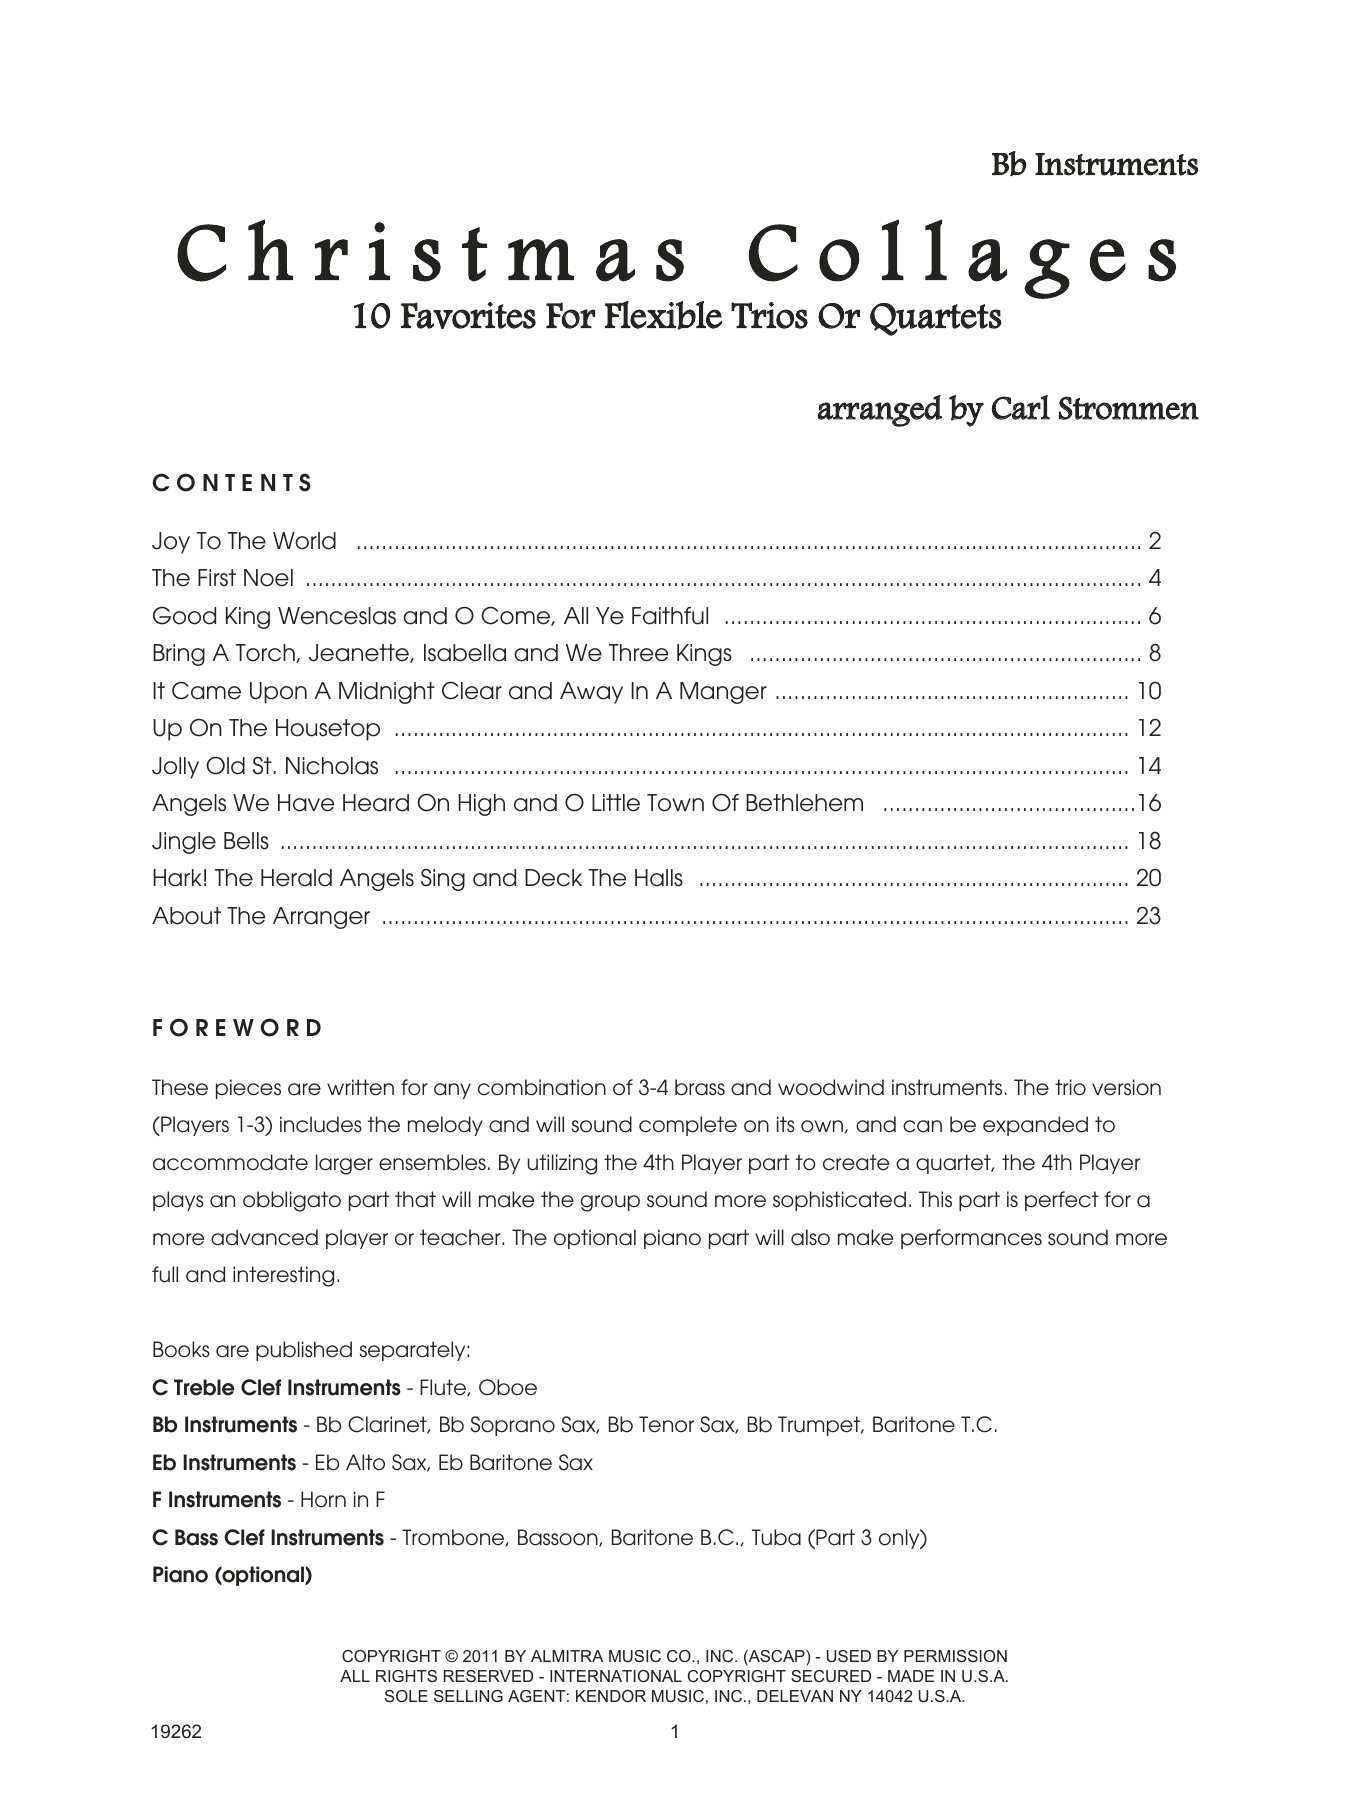 Christmas Collages - Bb Instruments Sheet Music